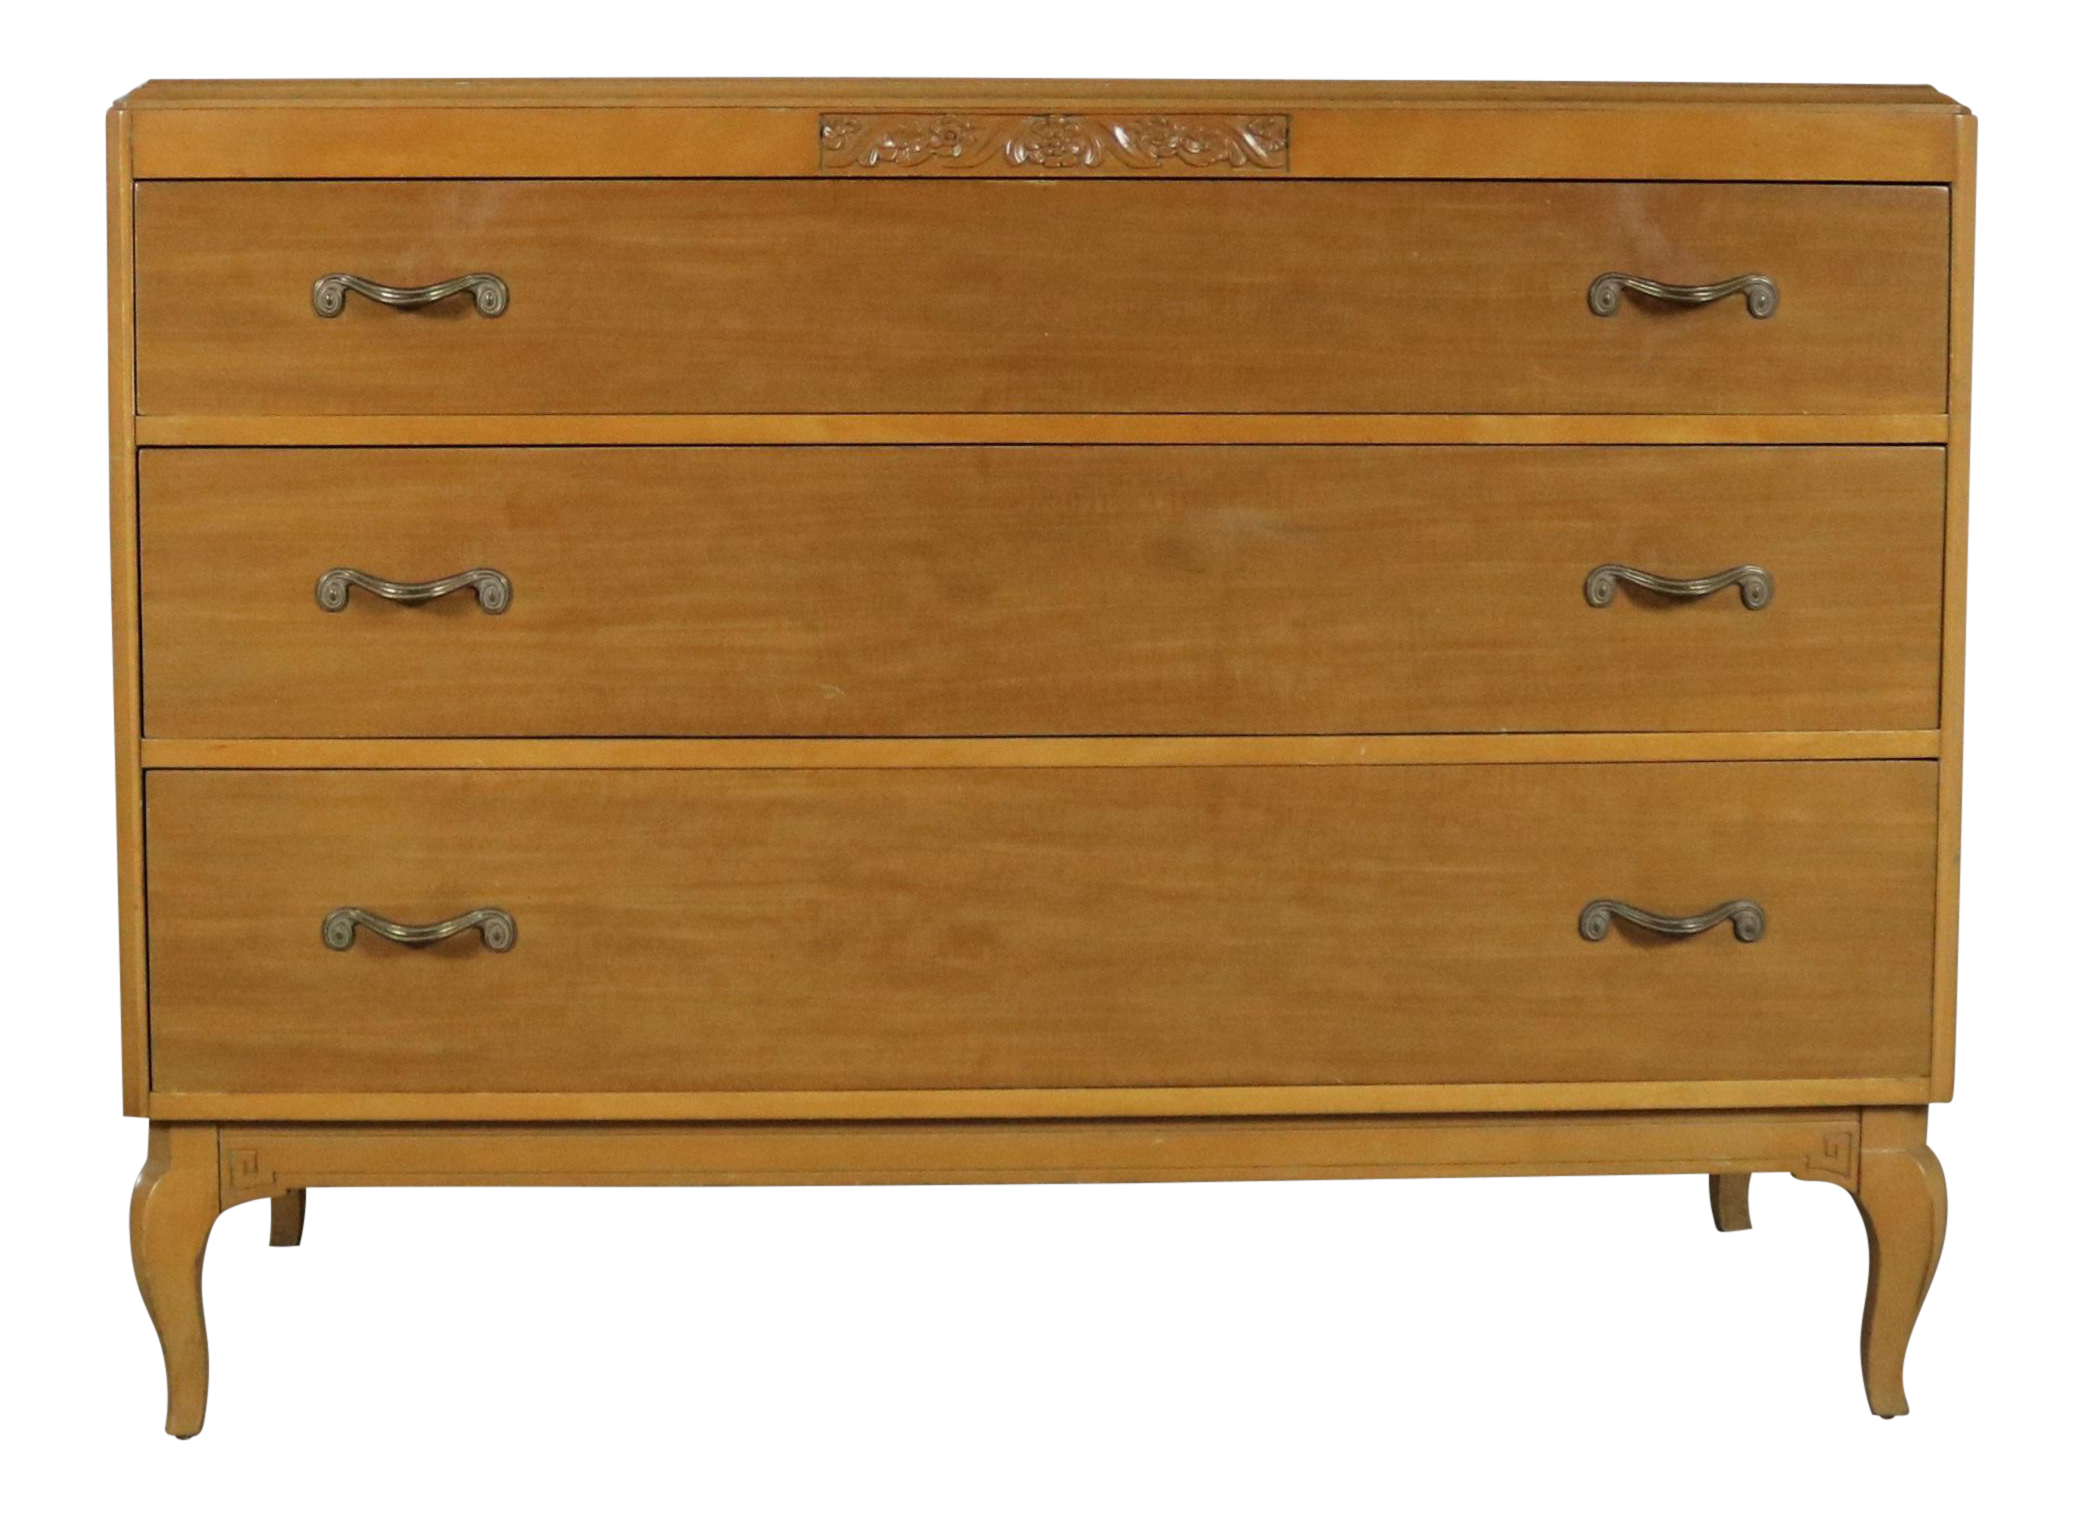 Art Deco Style Low Dresser By Rway Northern Furniture Company Of Sheboygan